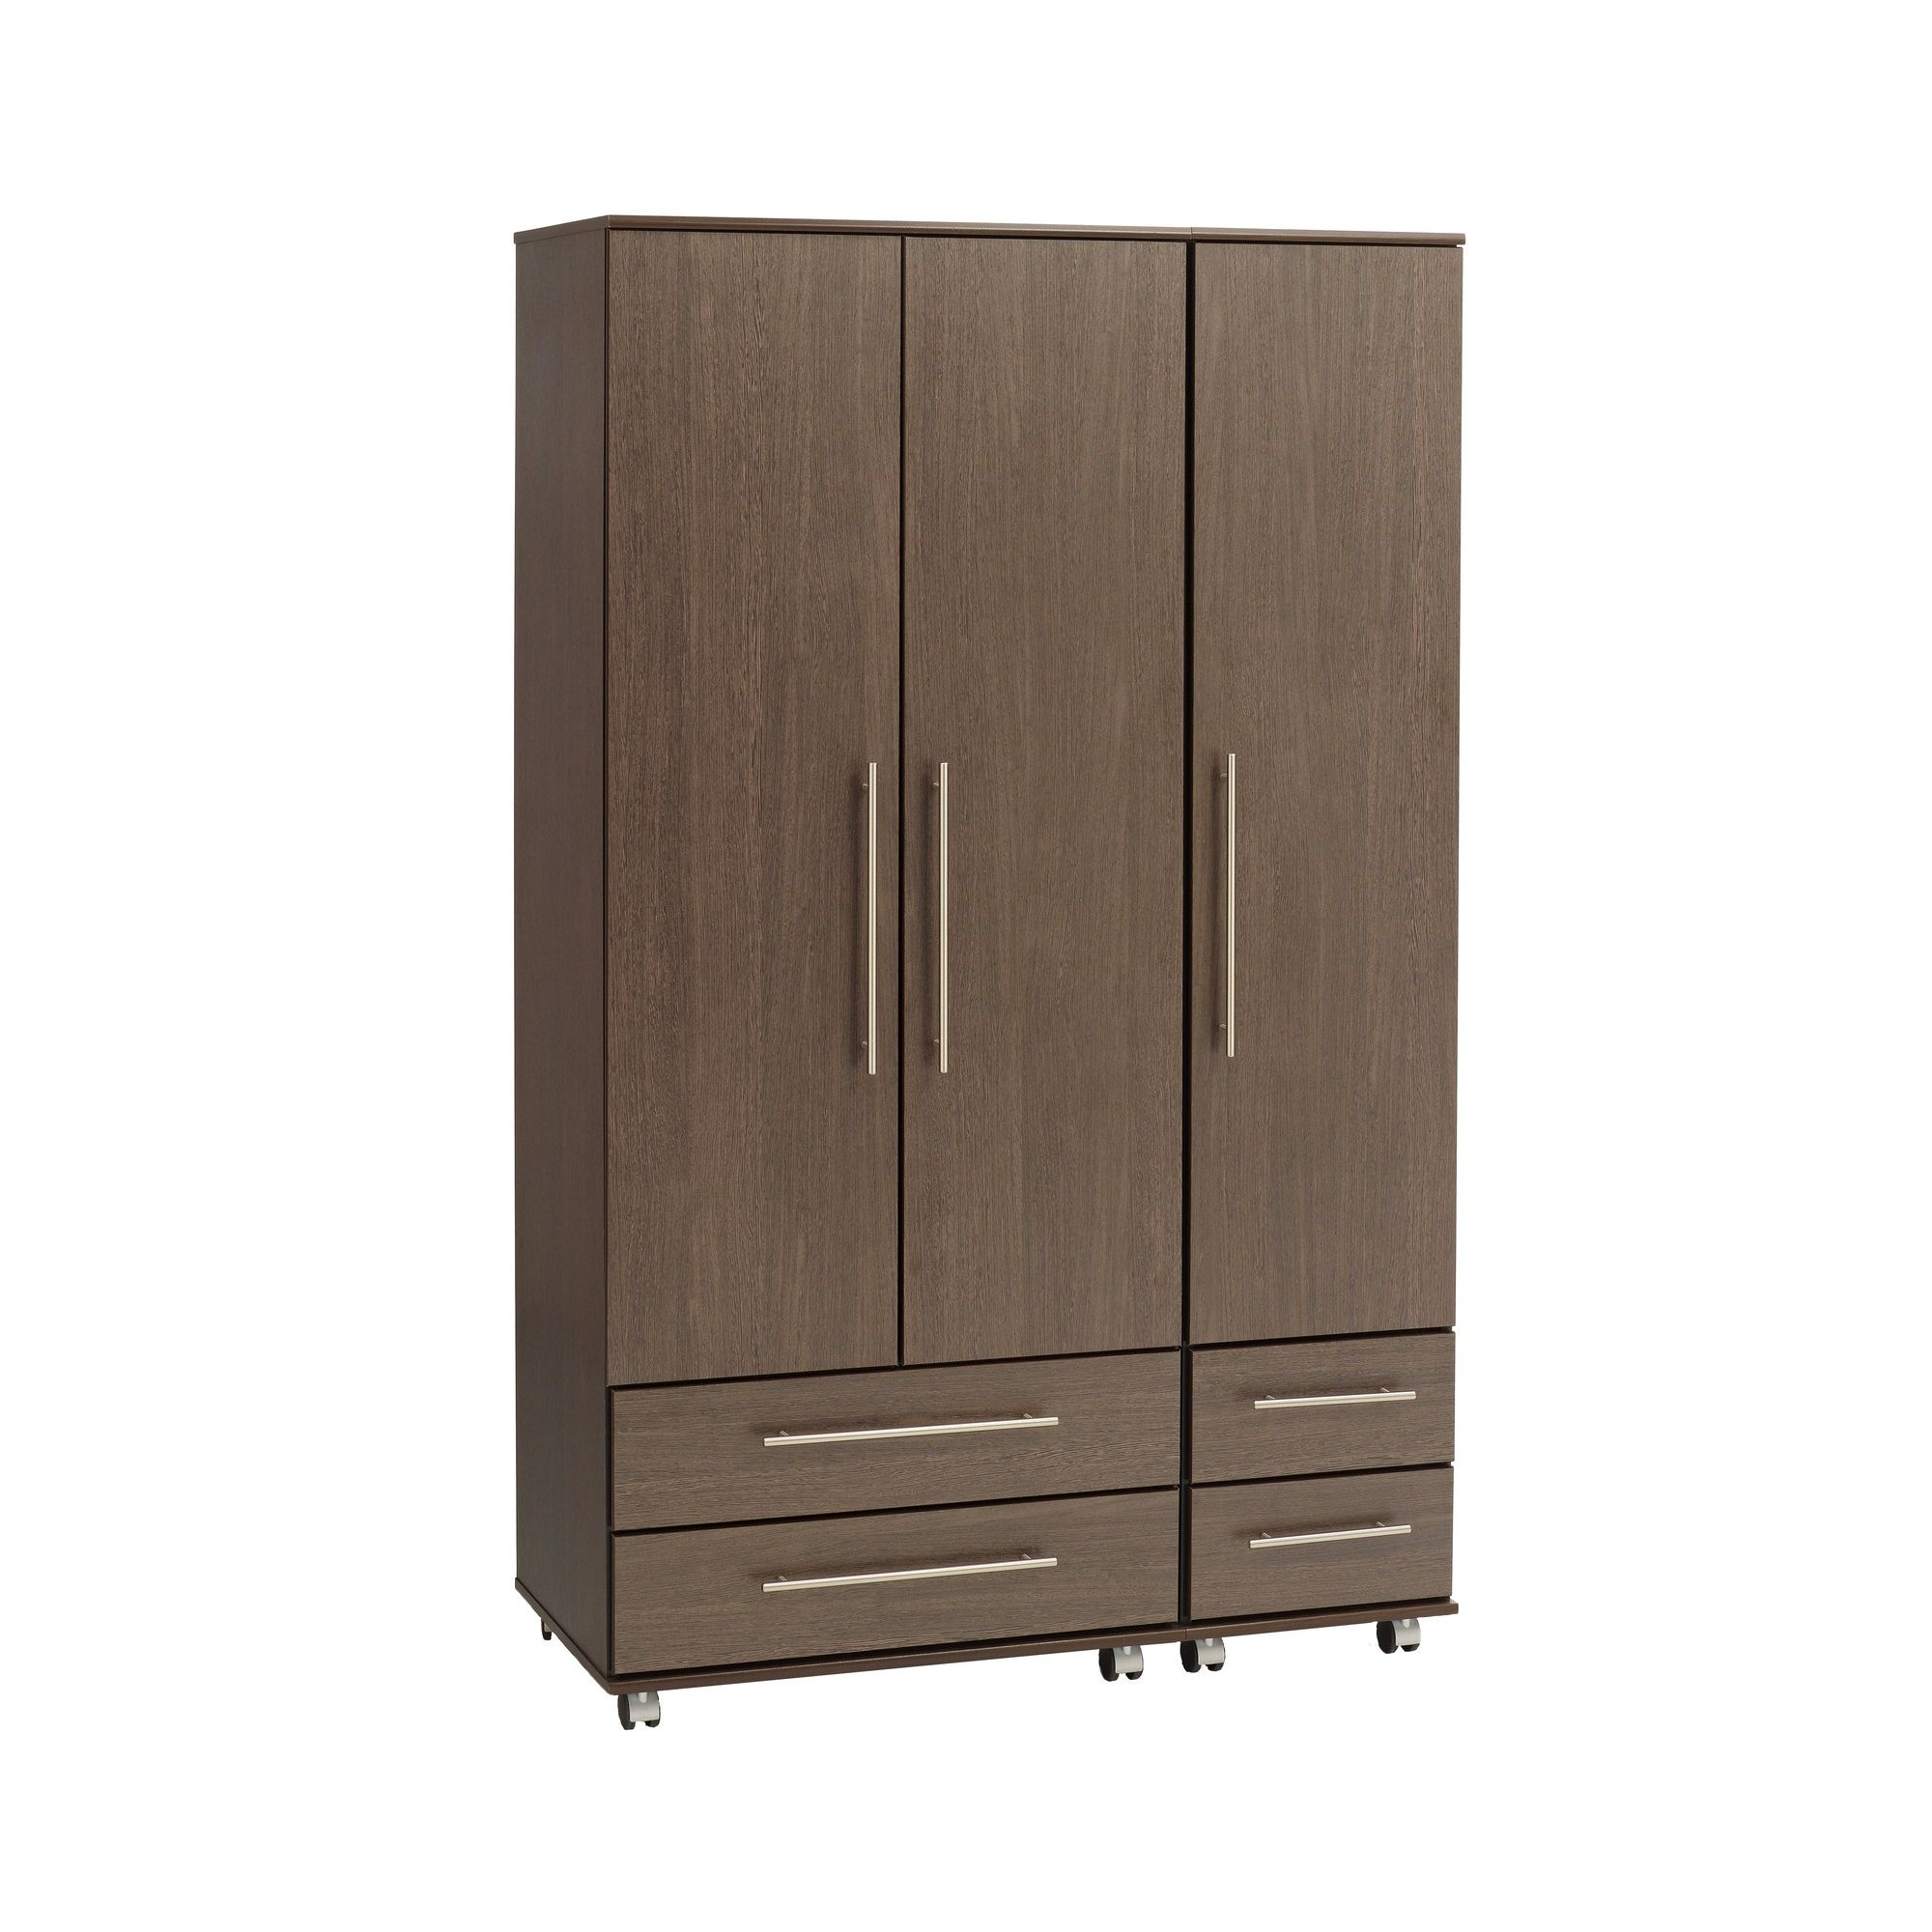 Ideal Furniture New York Triple Wardrobe with Four Drawers - American Walnut at Tesco Direct